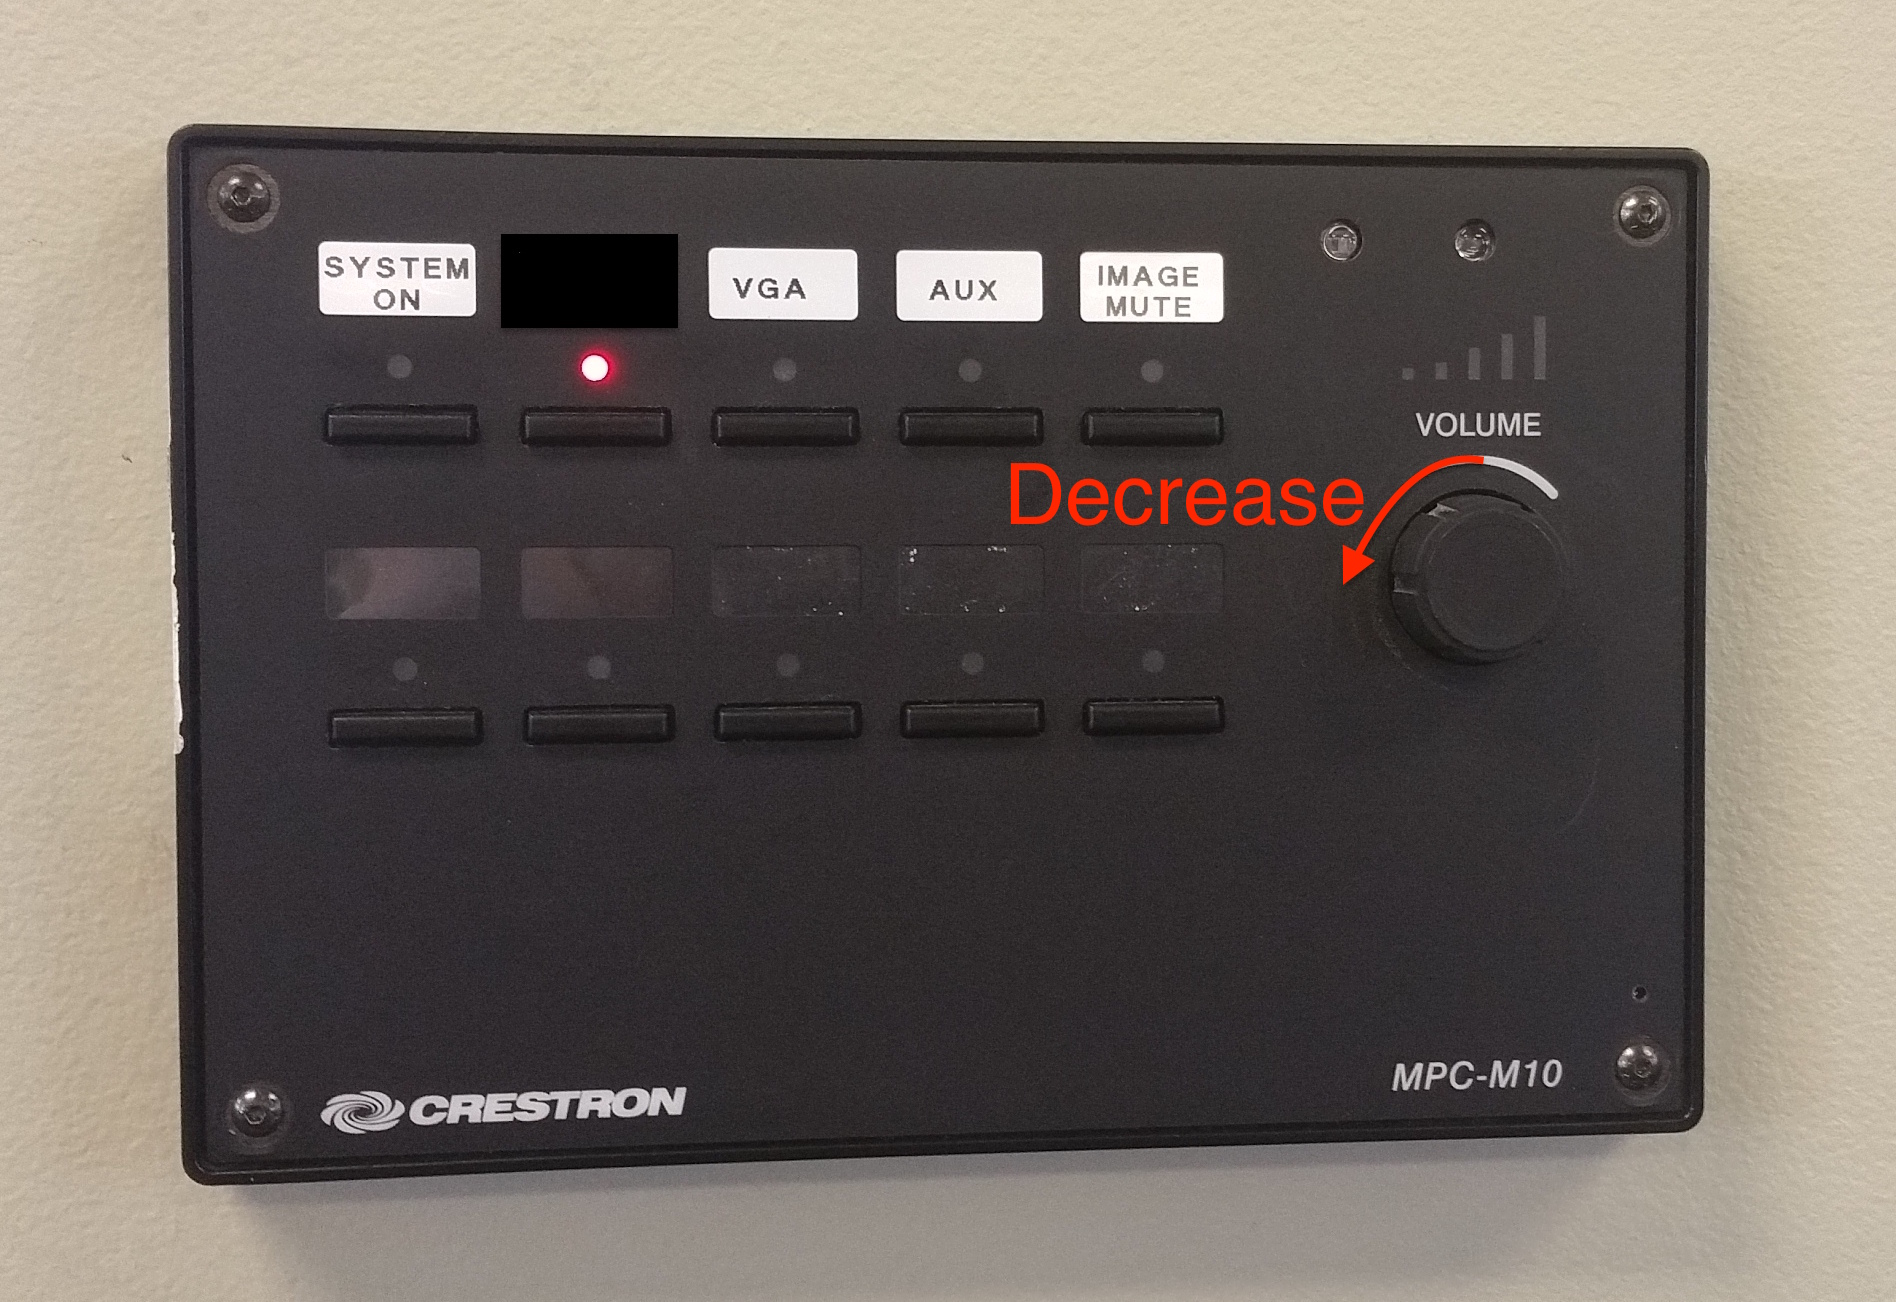 A photo that show the knob to decrease the volume.